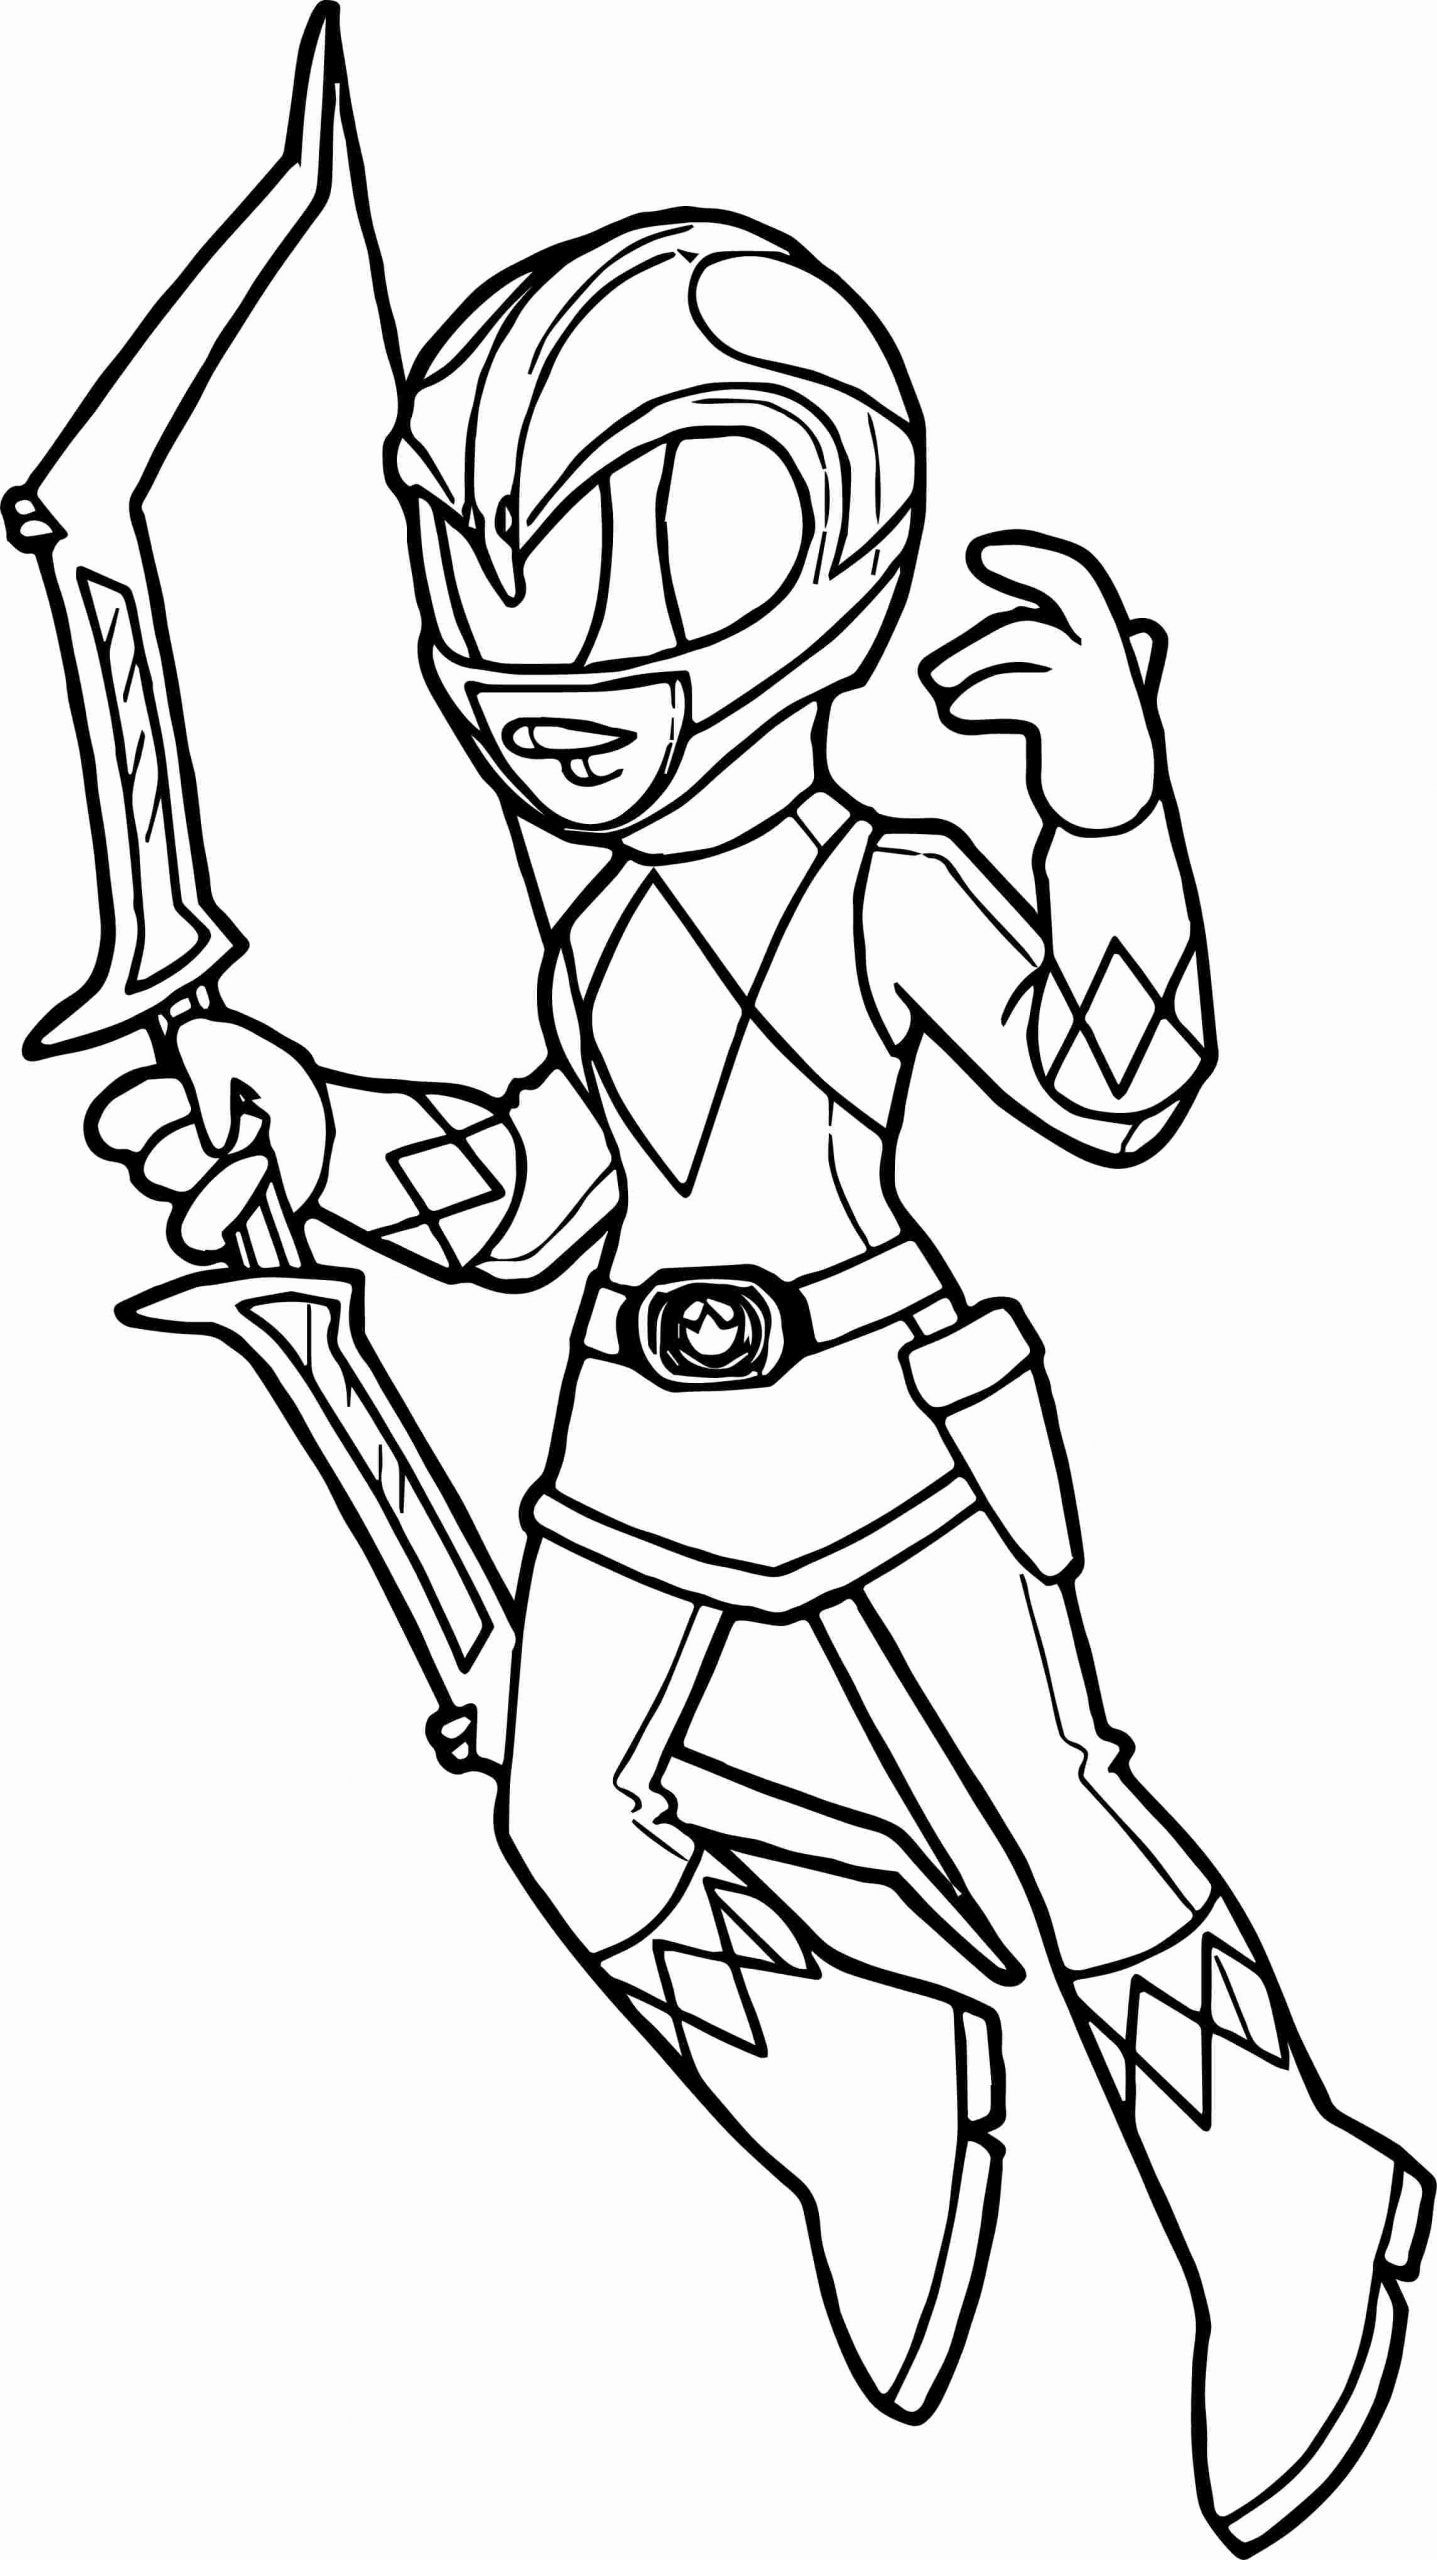 Power Ranger Coloring Page Fresh Printable Coloring Pages Power Rangers The Power 15 Power Rangers Coloring Pages Pink Power Rangers Minion Coloring Pages